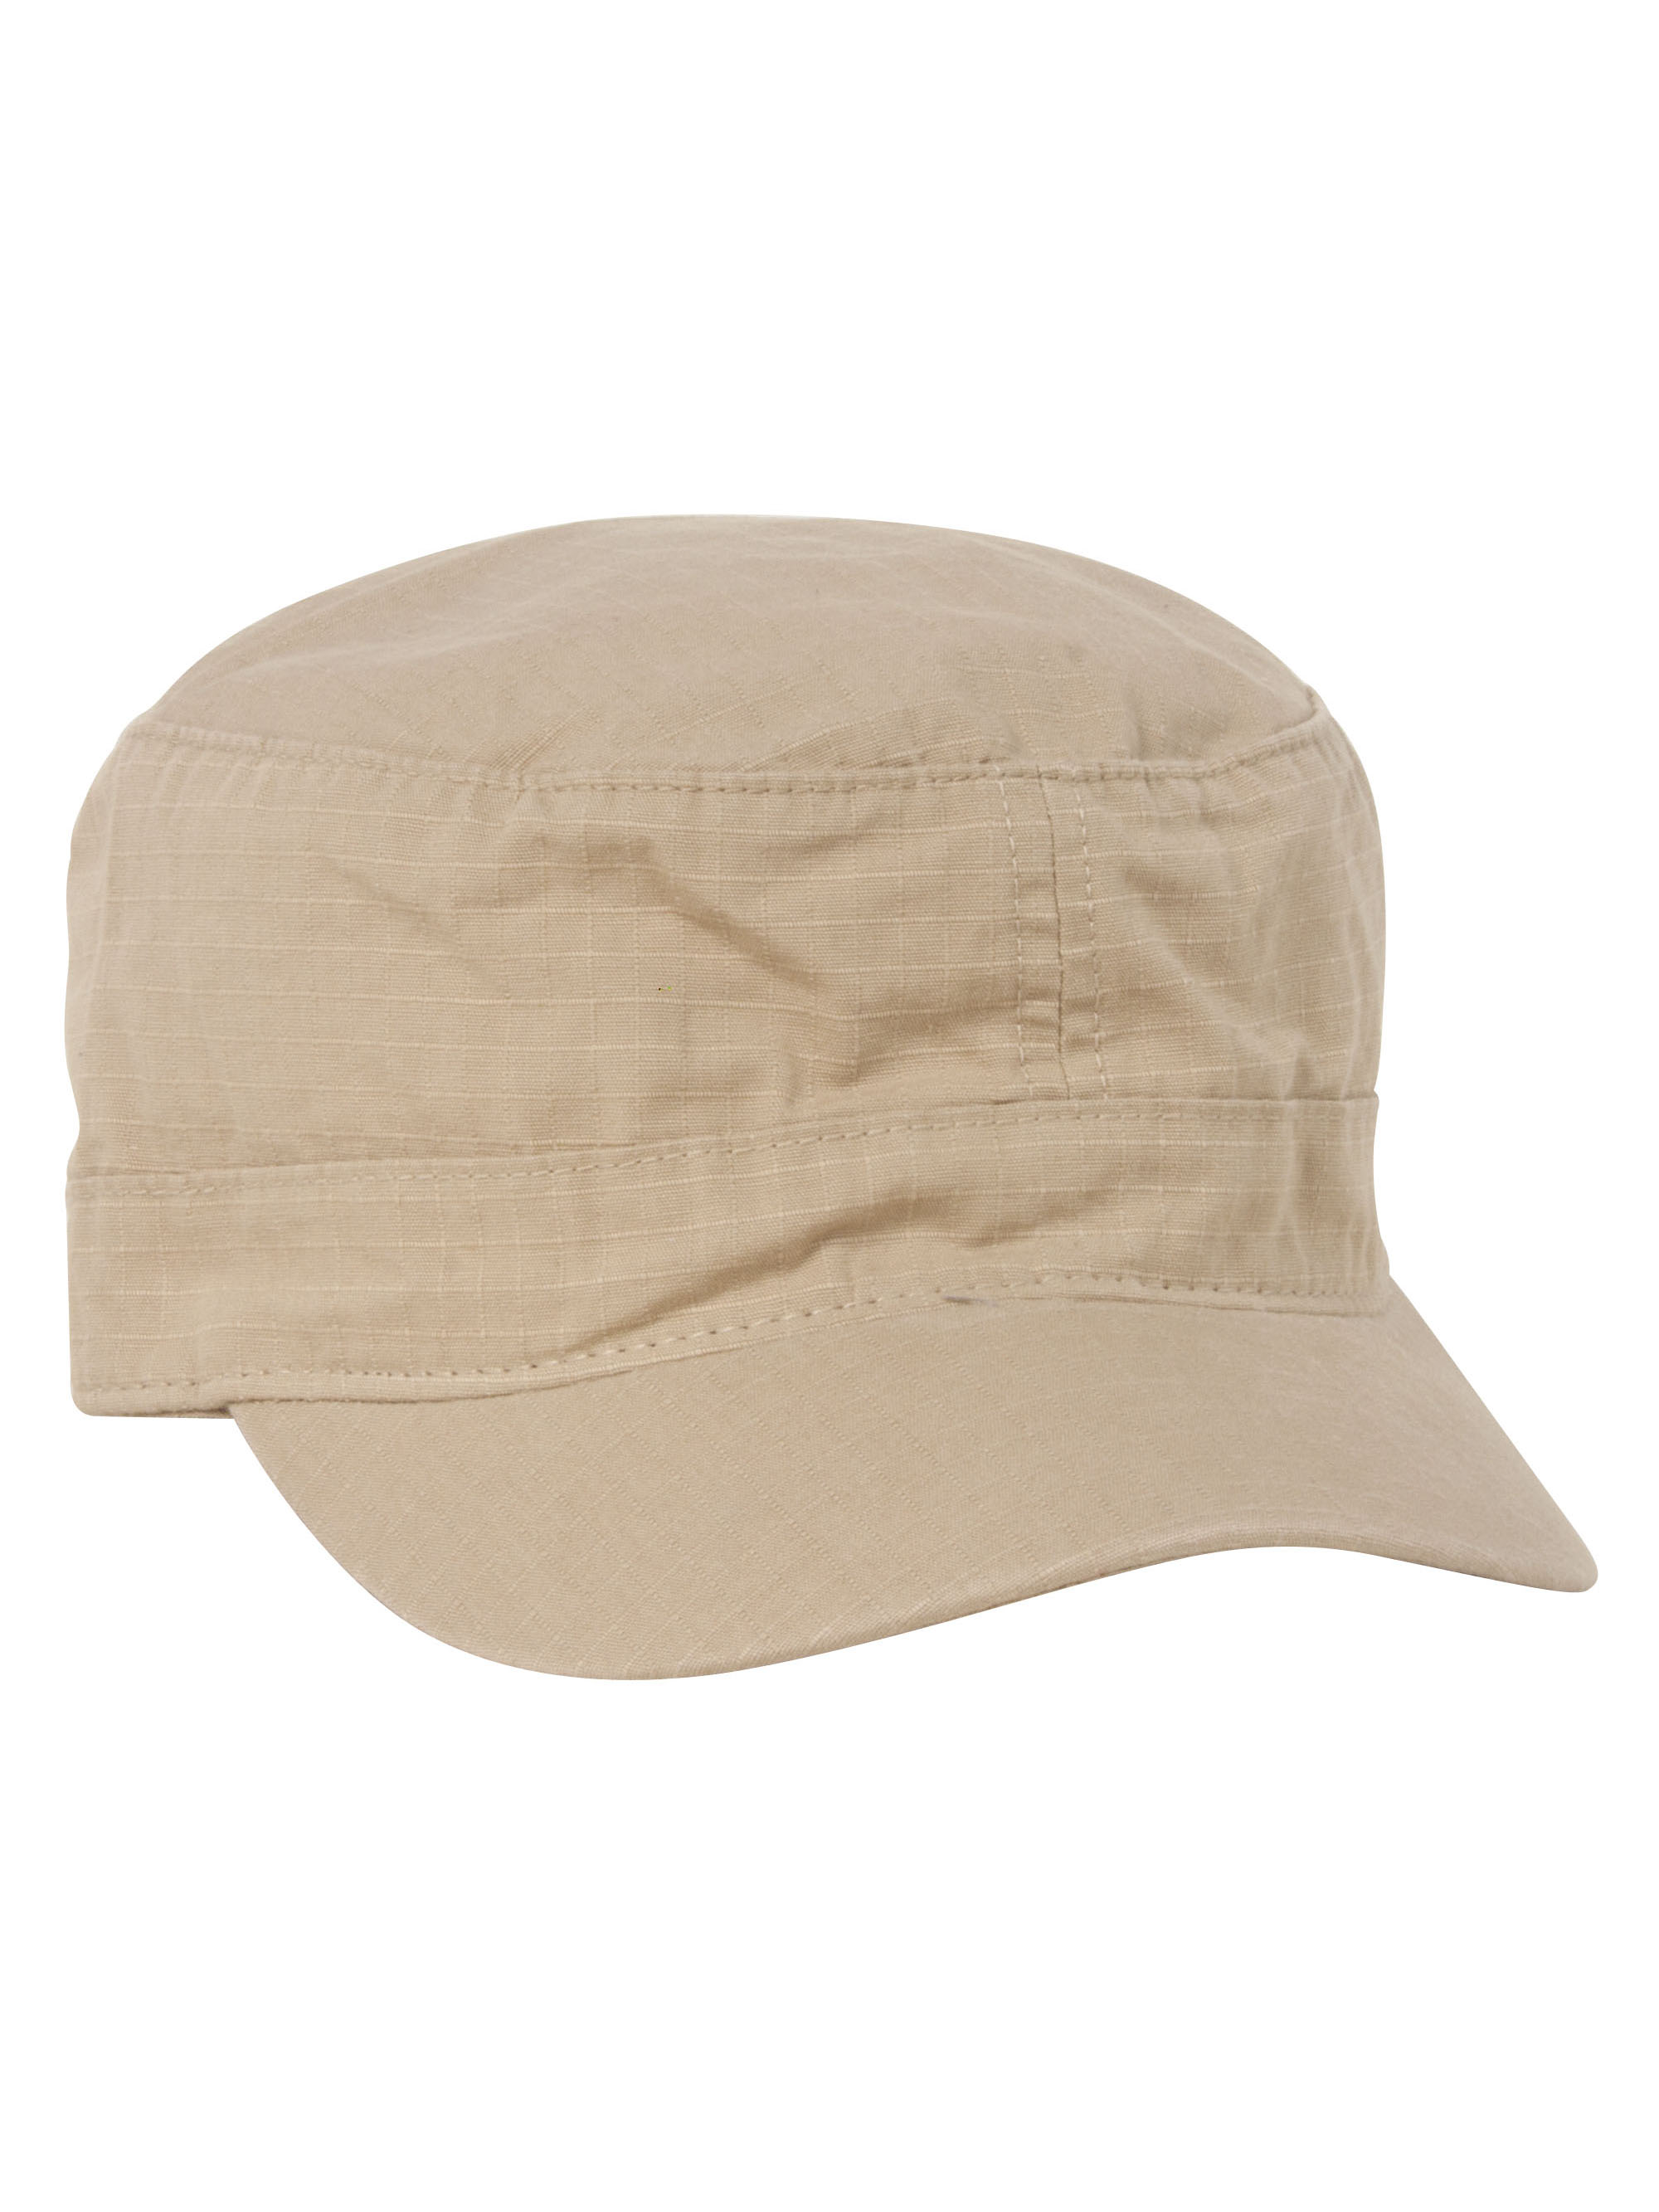 59112a1d Fitted Cotton Ripstop Army Cap, Khaki Small/Medium - image 1 of 2 zoomed  image